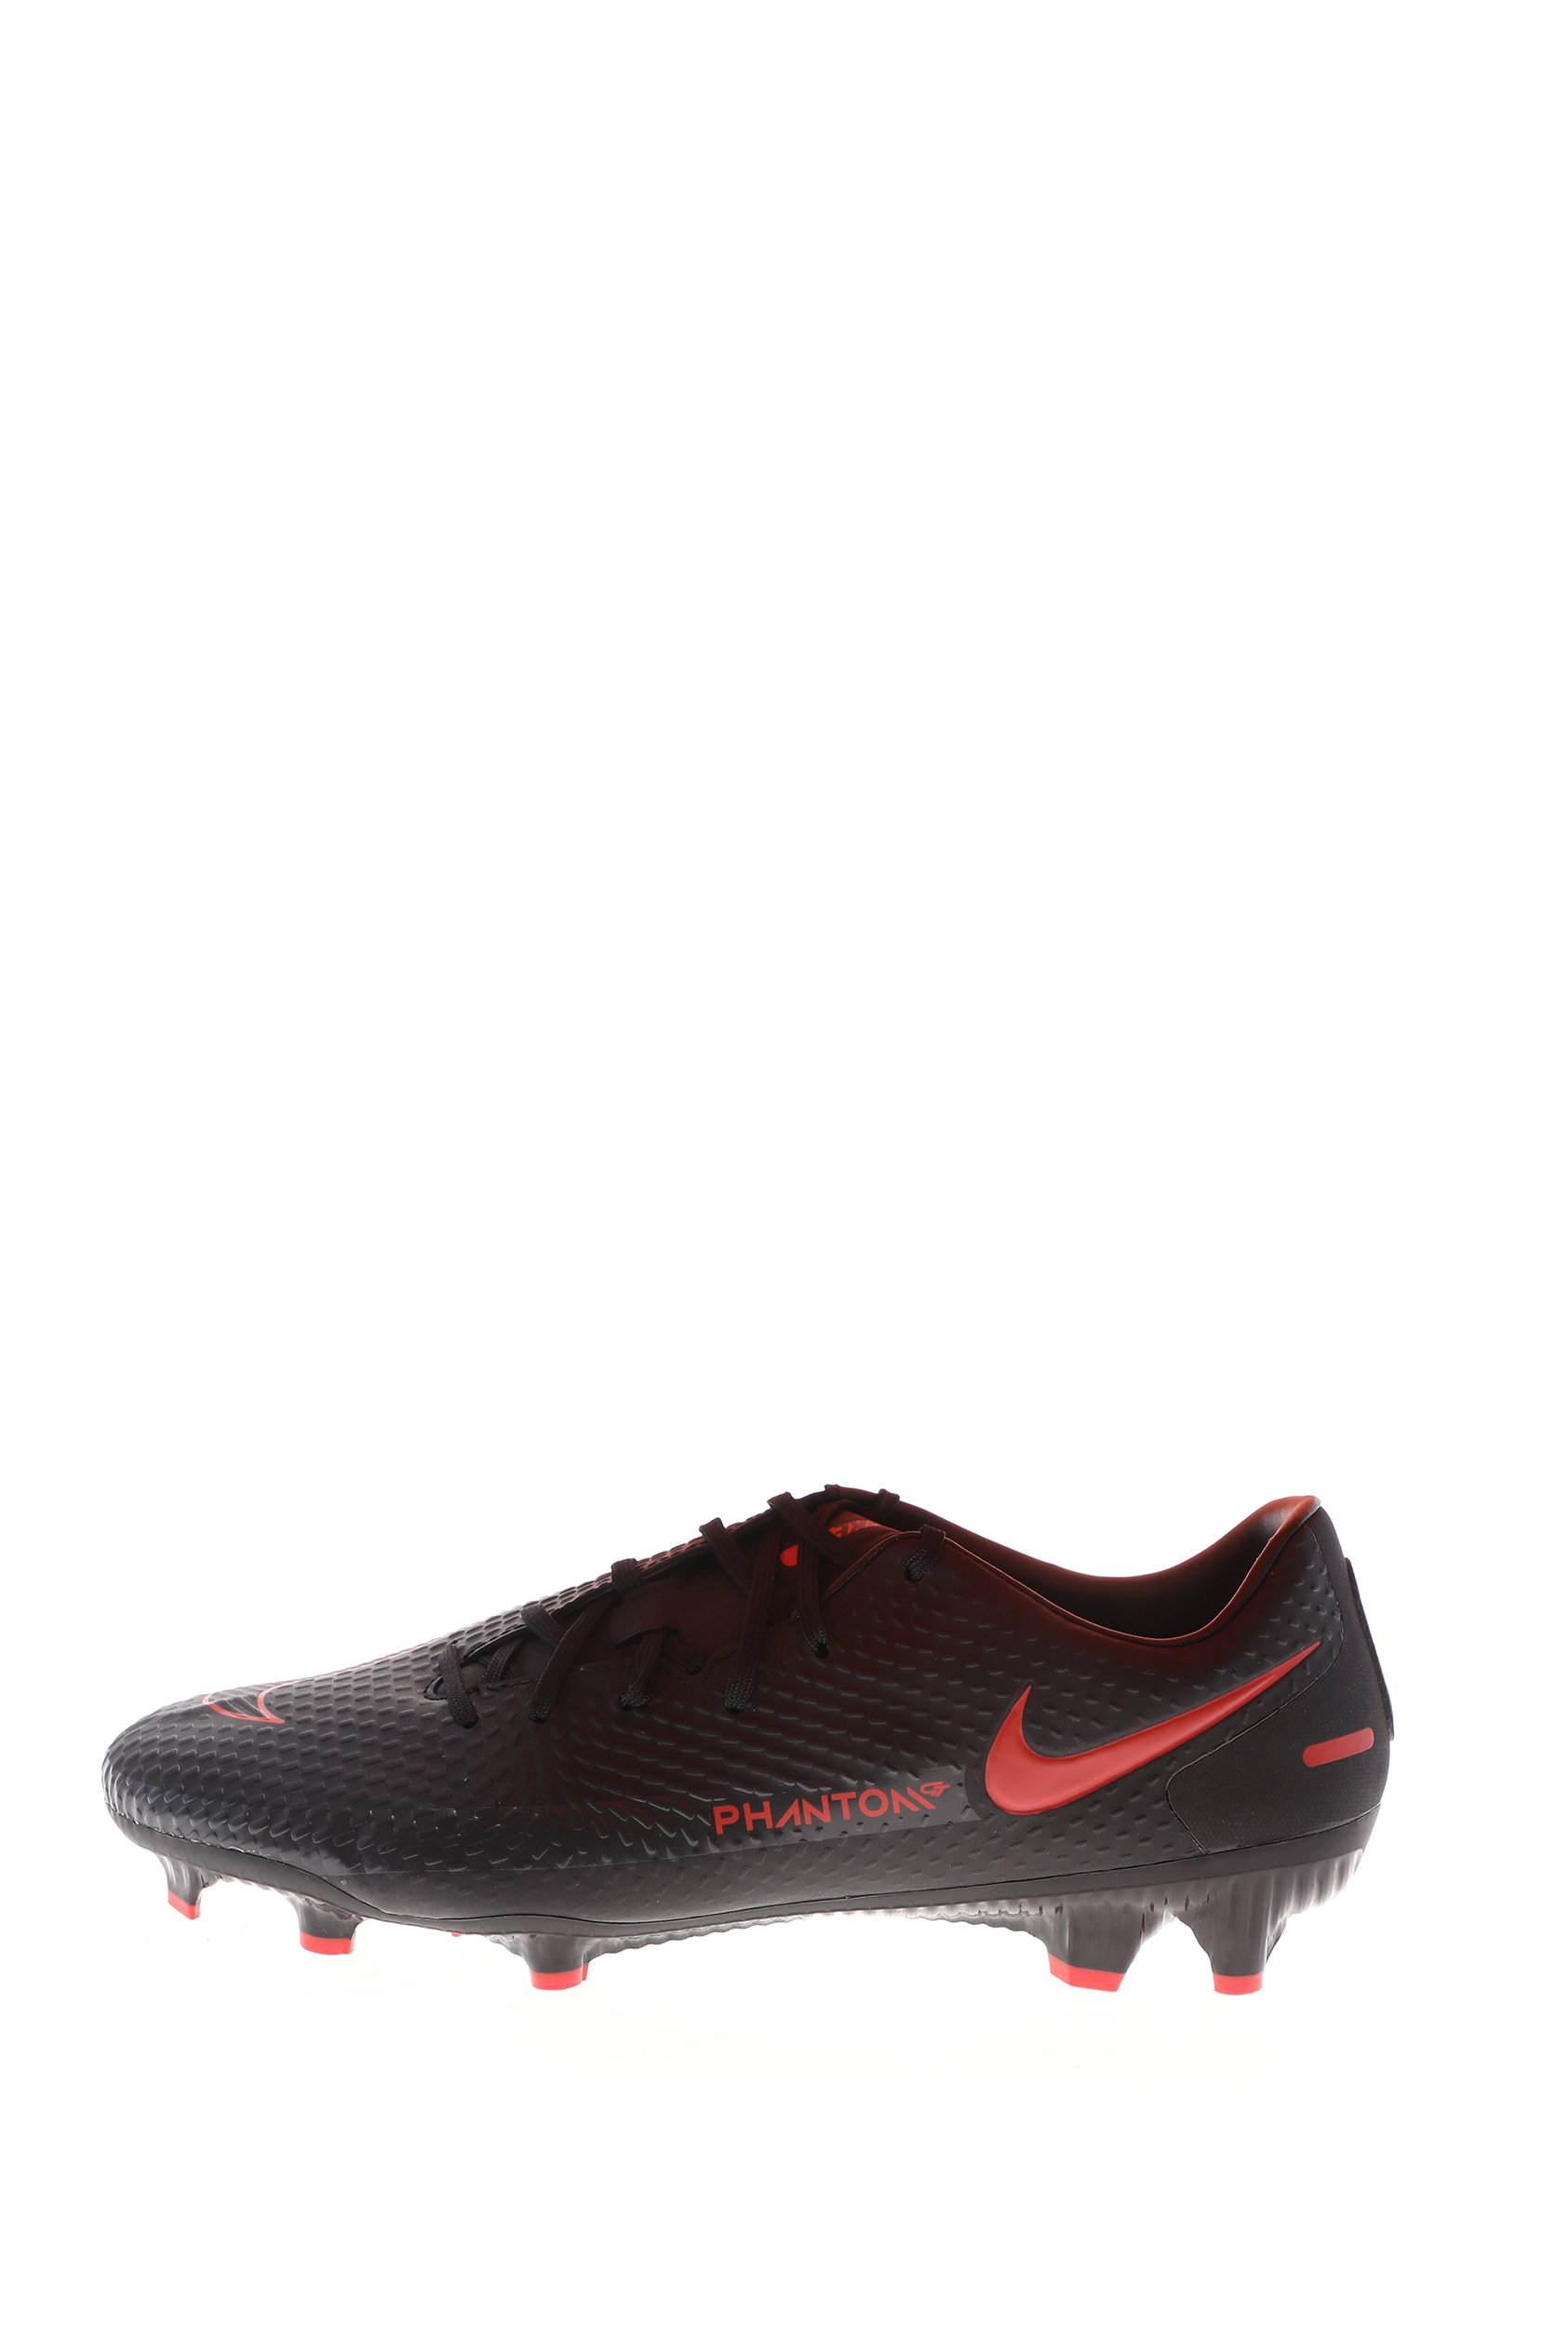 NIKE – Unisex παπουτσια football NIKE PHANTOM GT ACADEMY FG/MG μαύρα ροζ